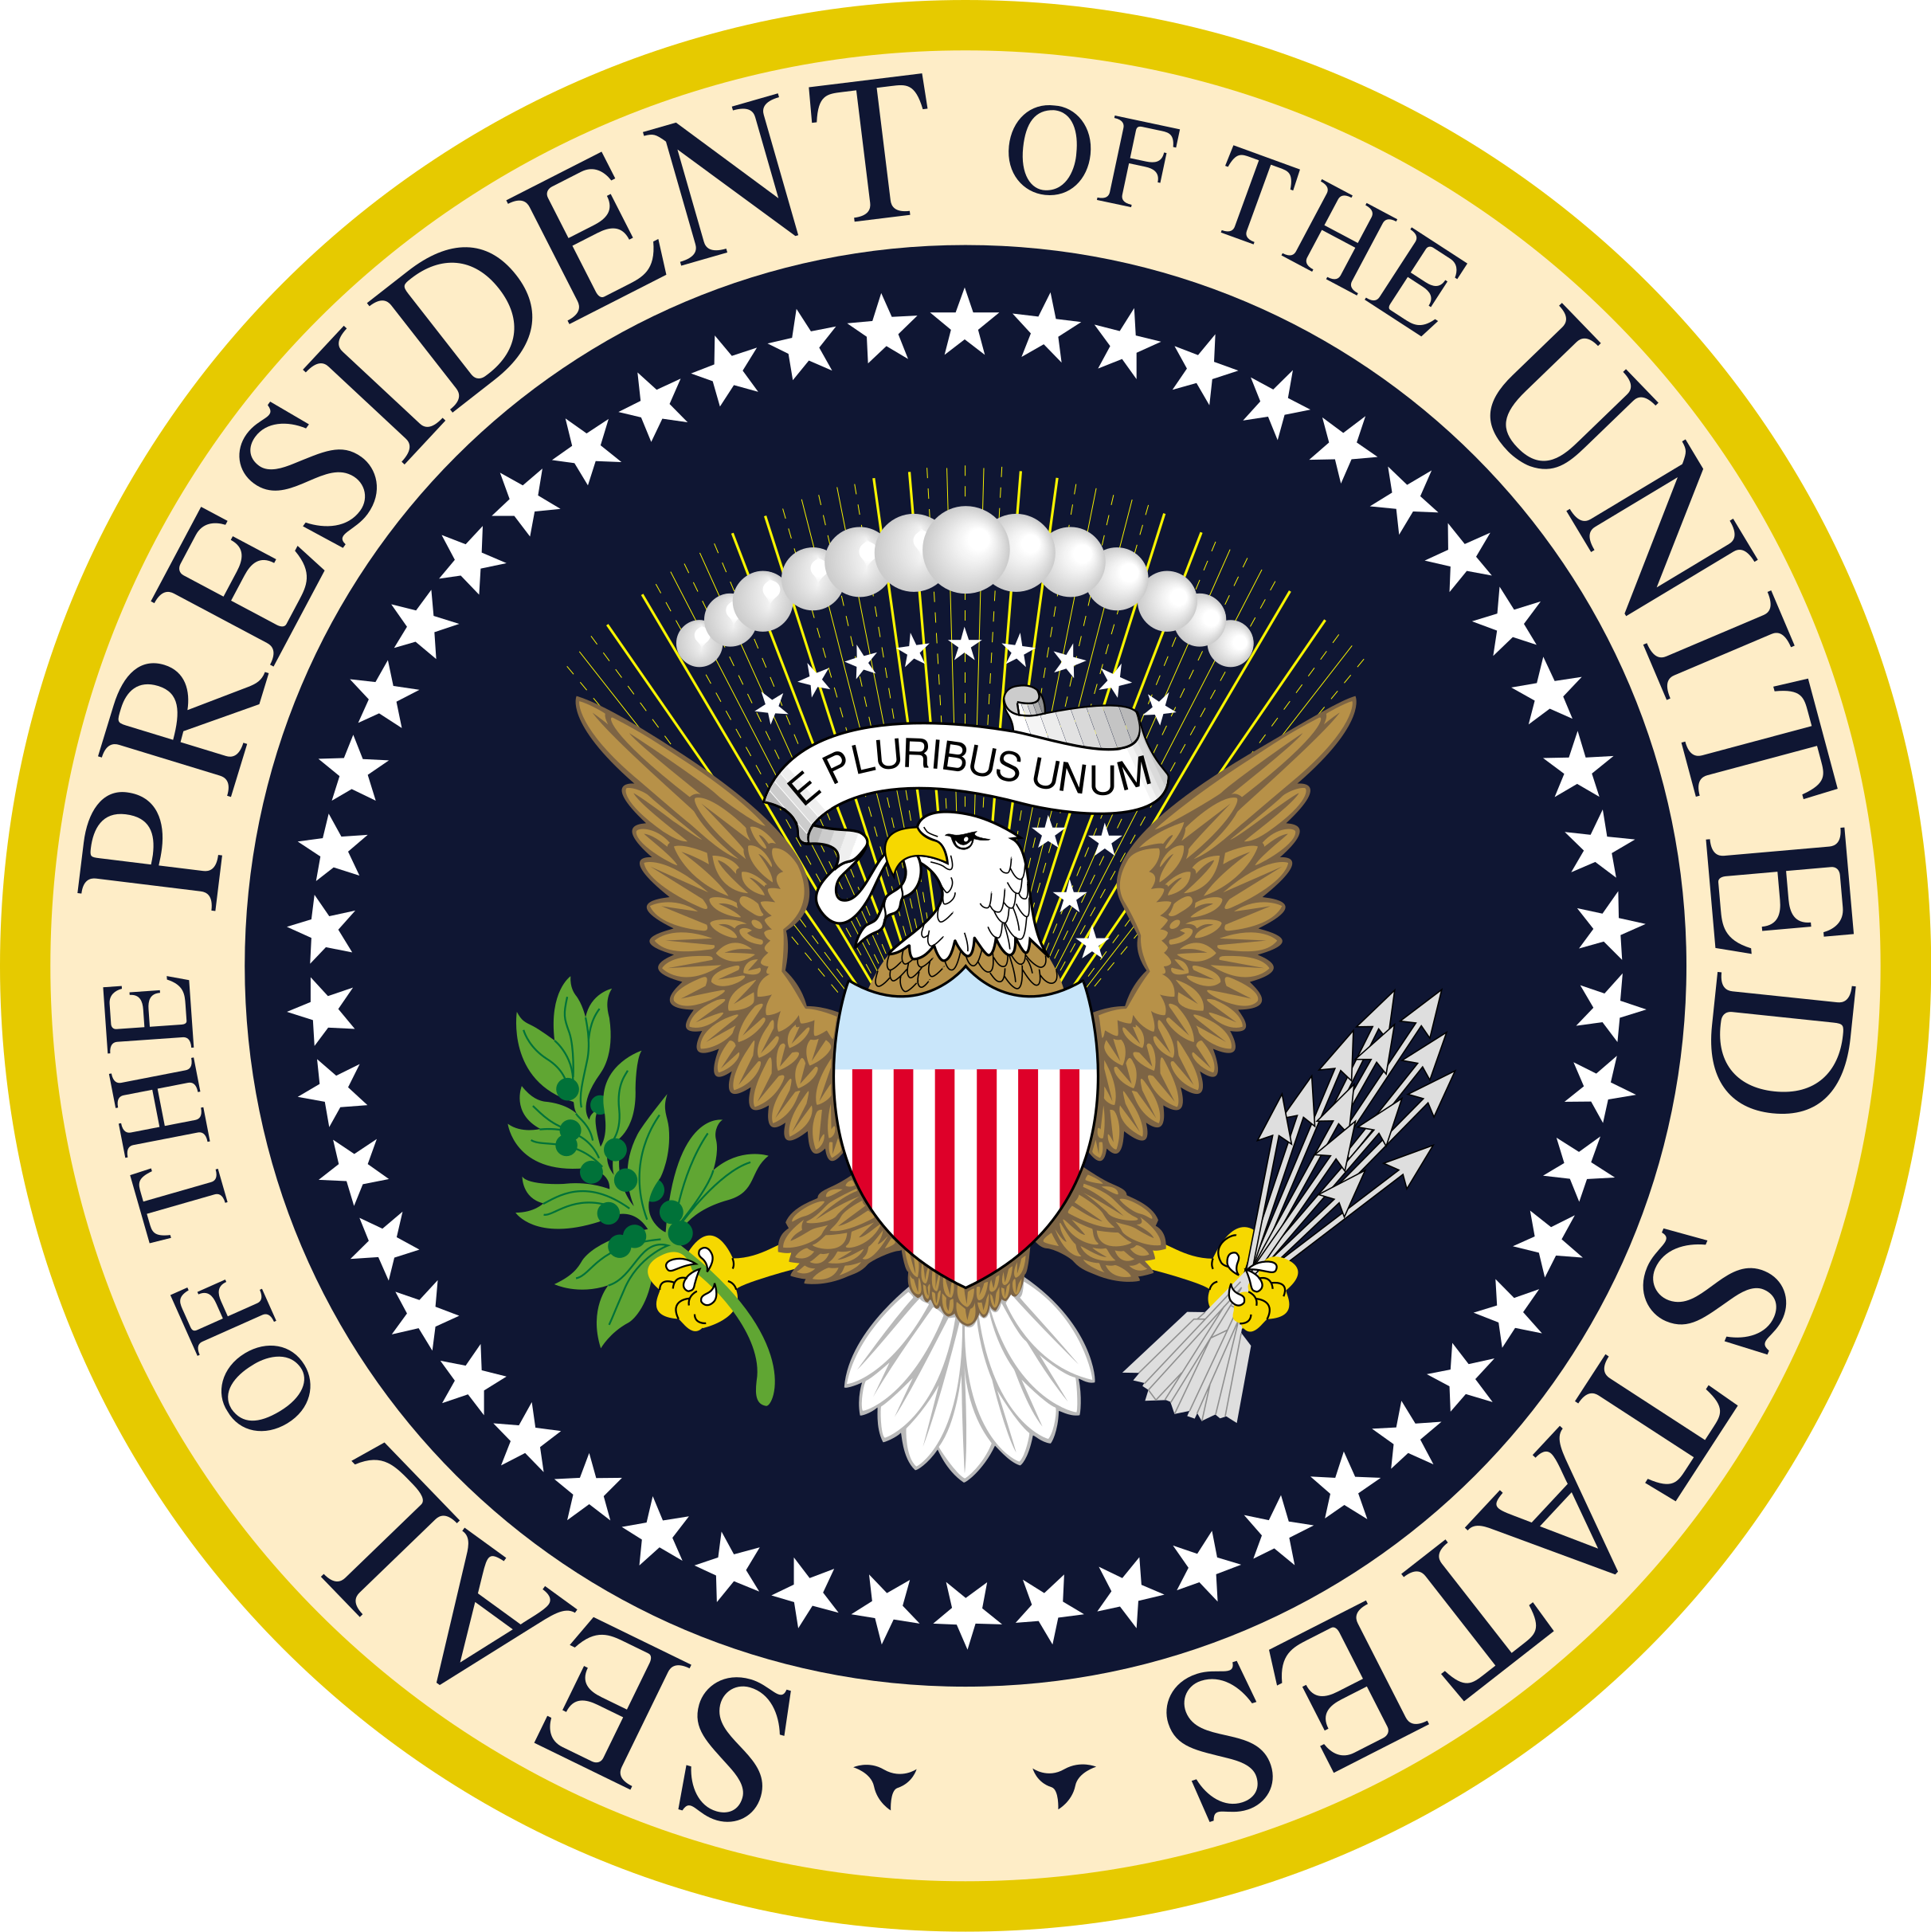 White house seal png. File of the president